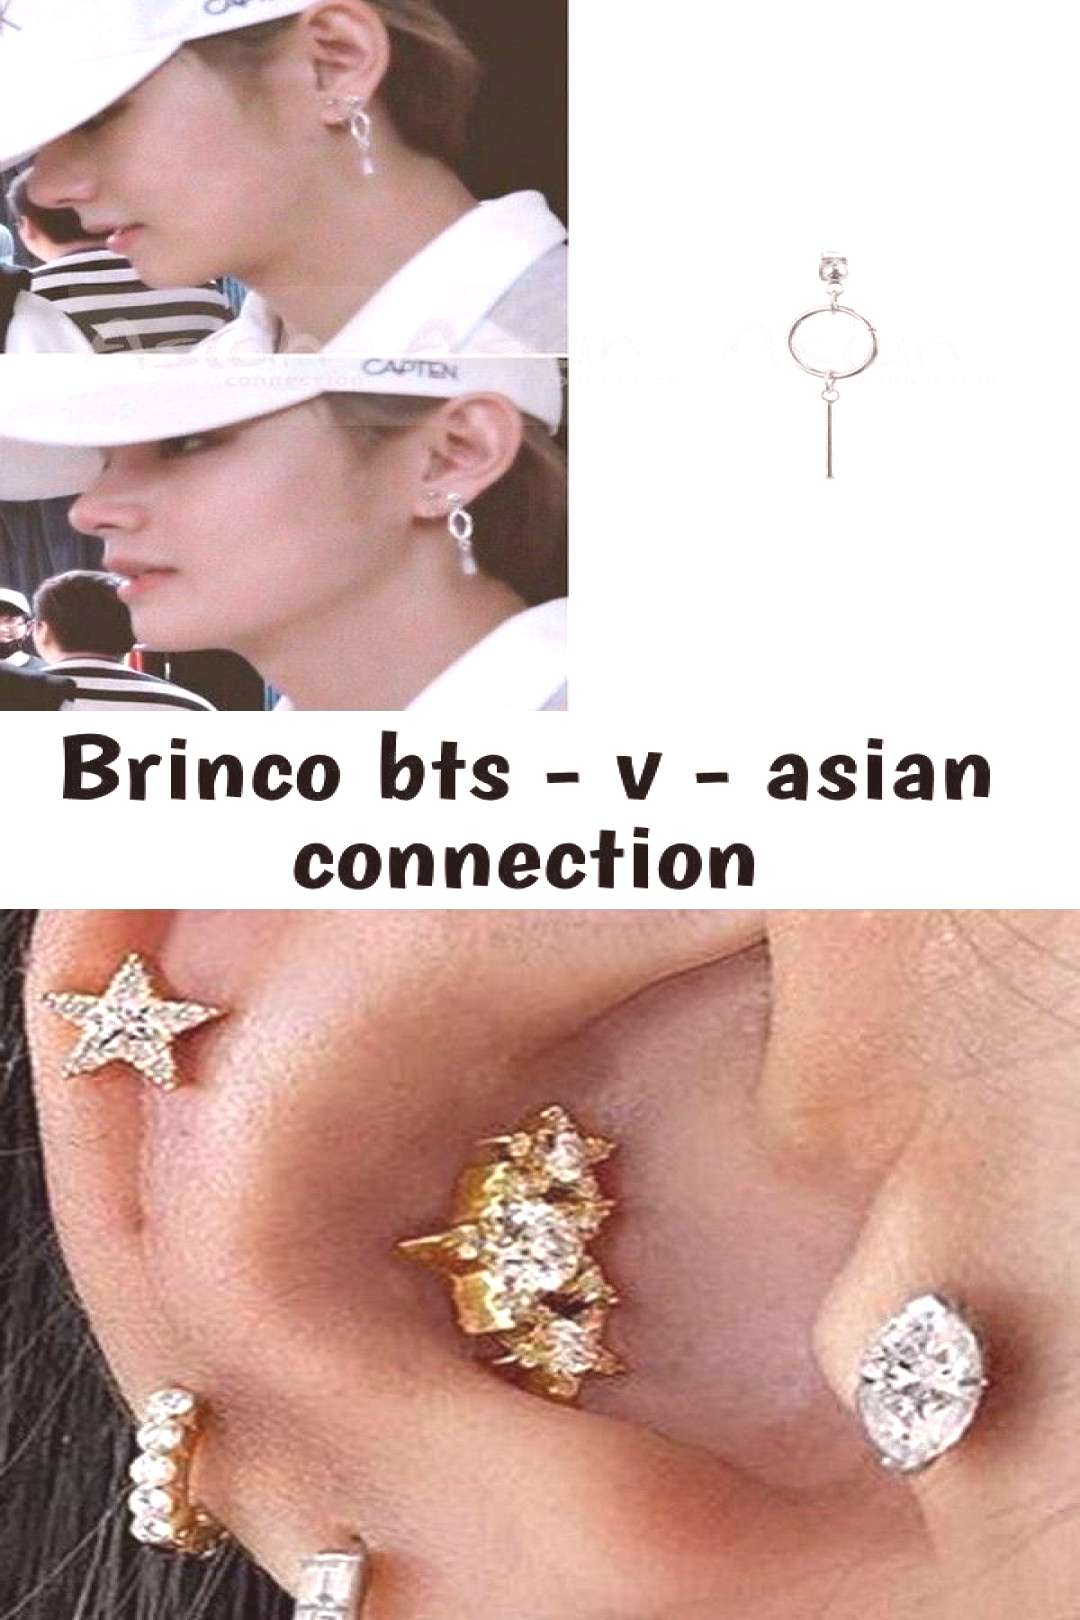 Brinco bts - v - asian connection Brinco BTS - V - Asian Connection cute star flower multiple ear p